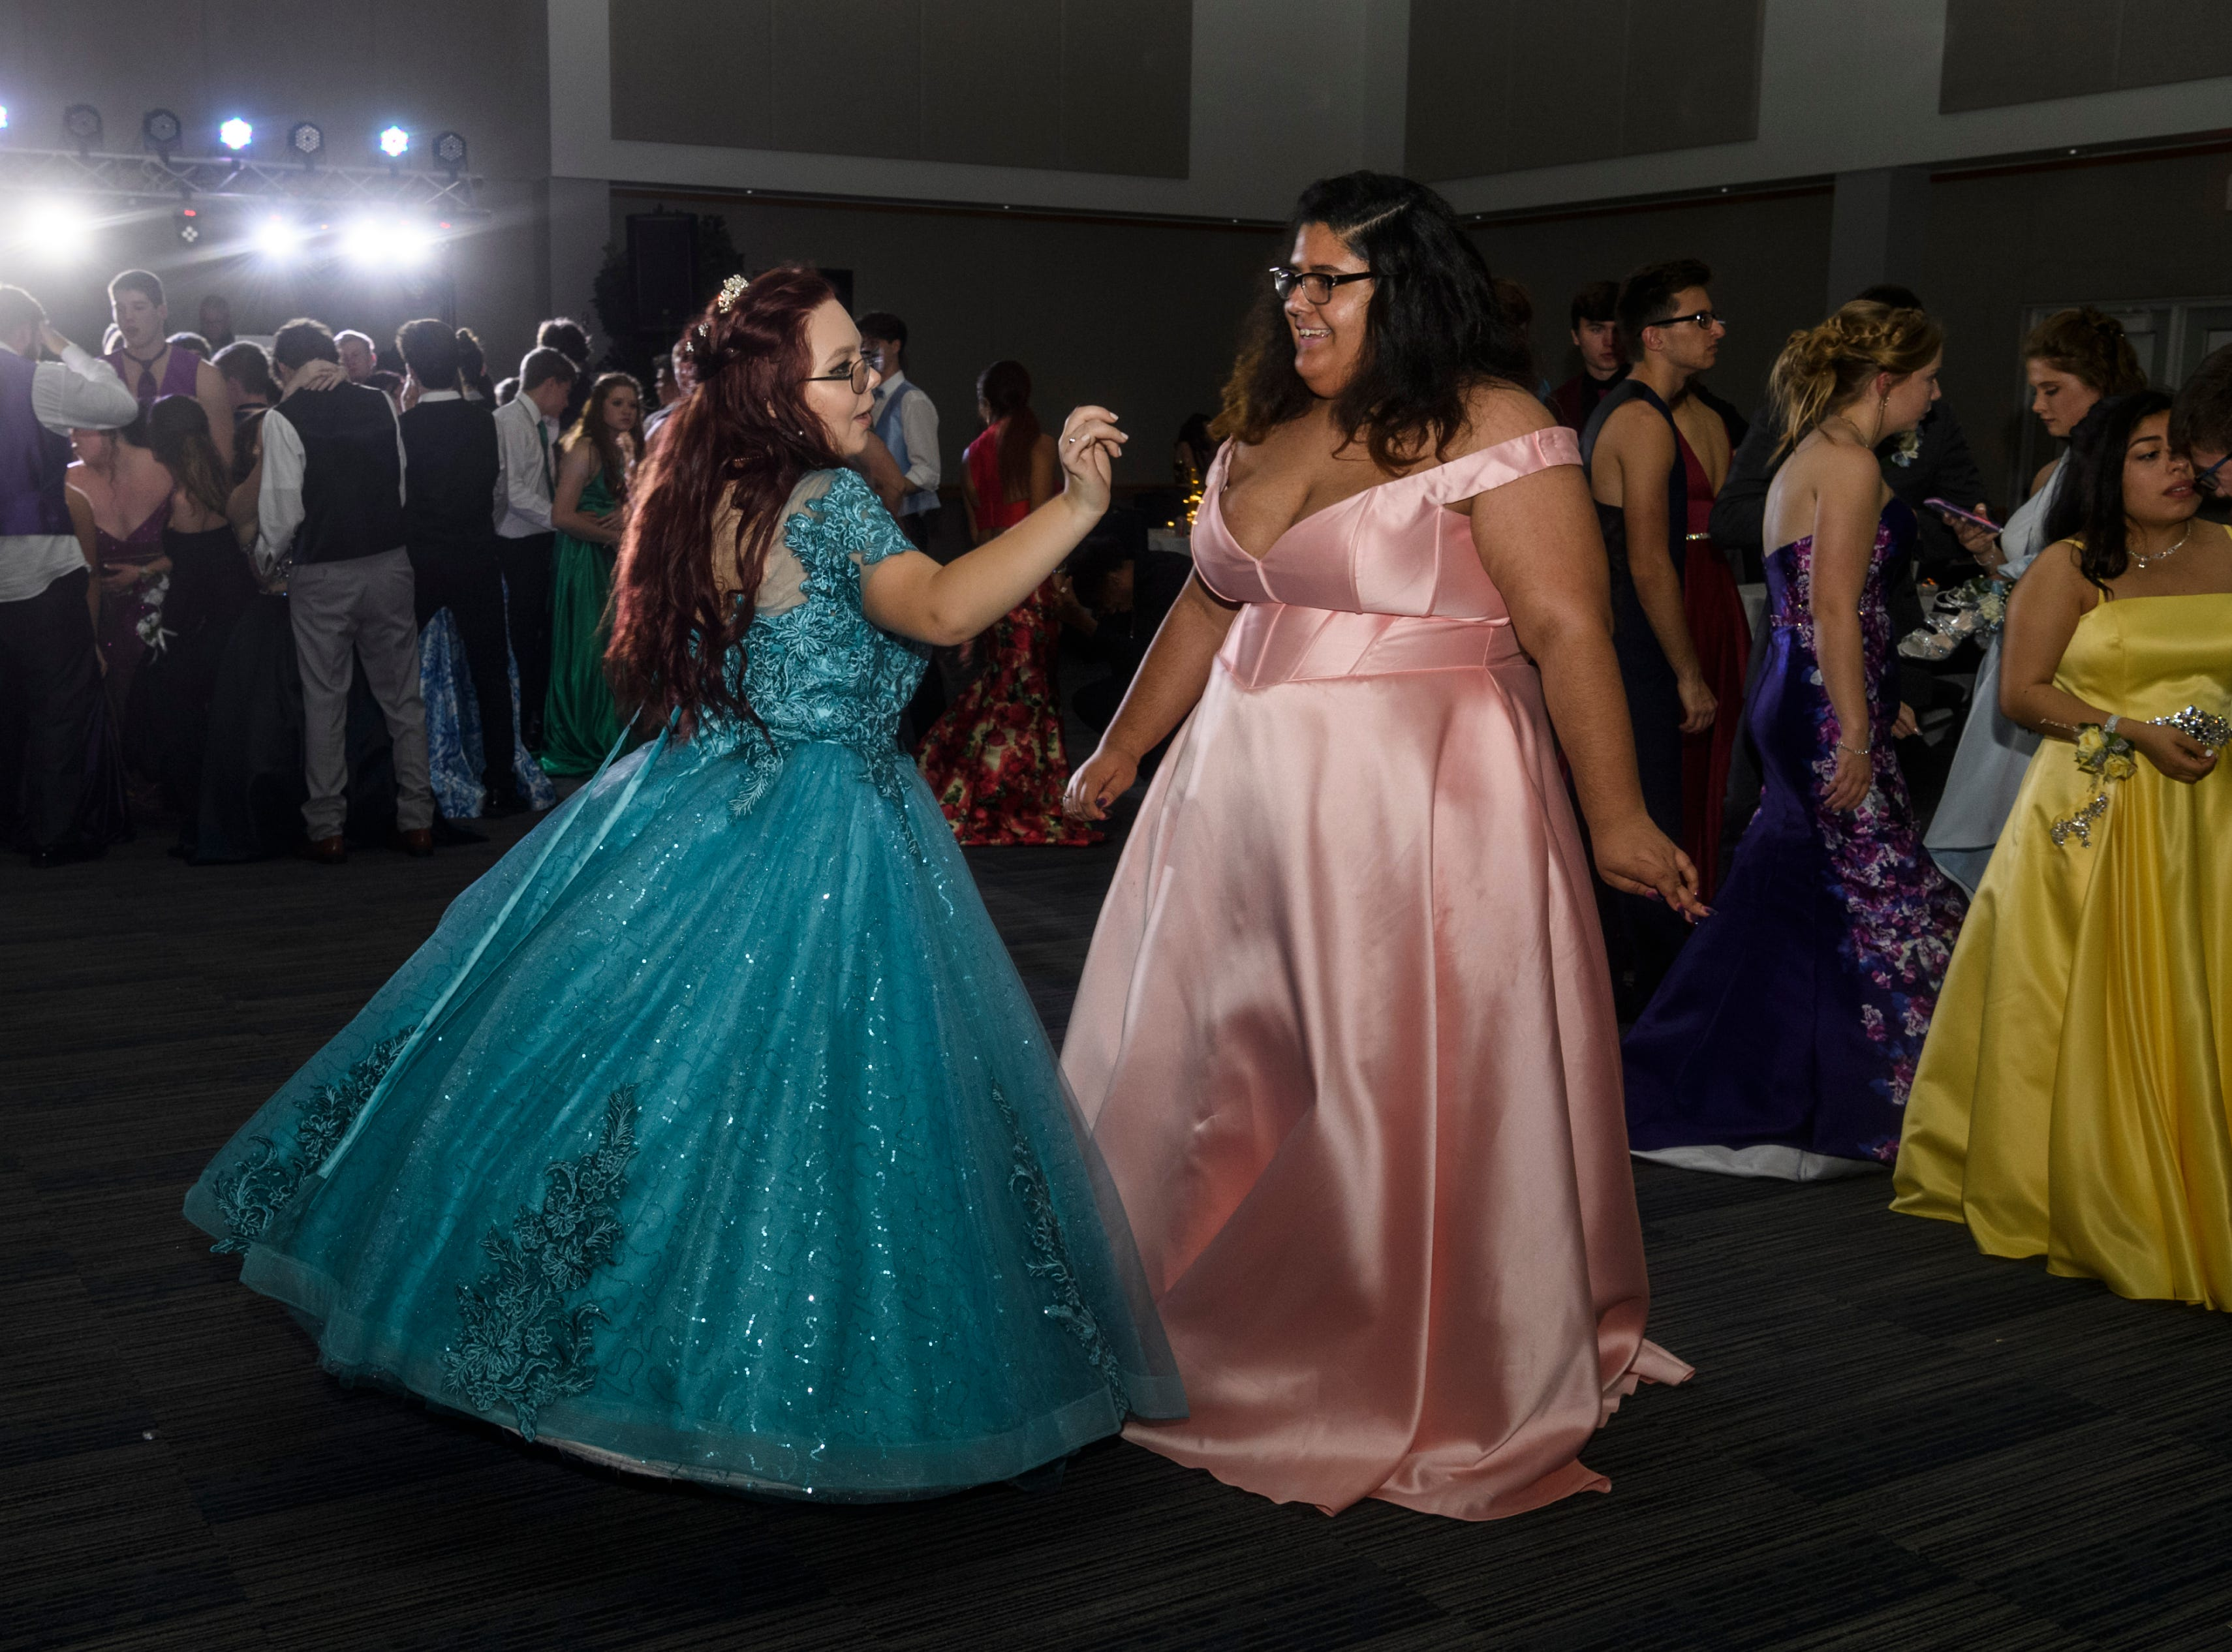 Mt. Vernon juniors Alexis Adamaitis, left, and Felicitie Flemmings, right, dance together during prom held inside the University of Southern Indiana's Carter Hall in Evansville, Ind., Saturday, May 4, 2019.